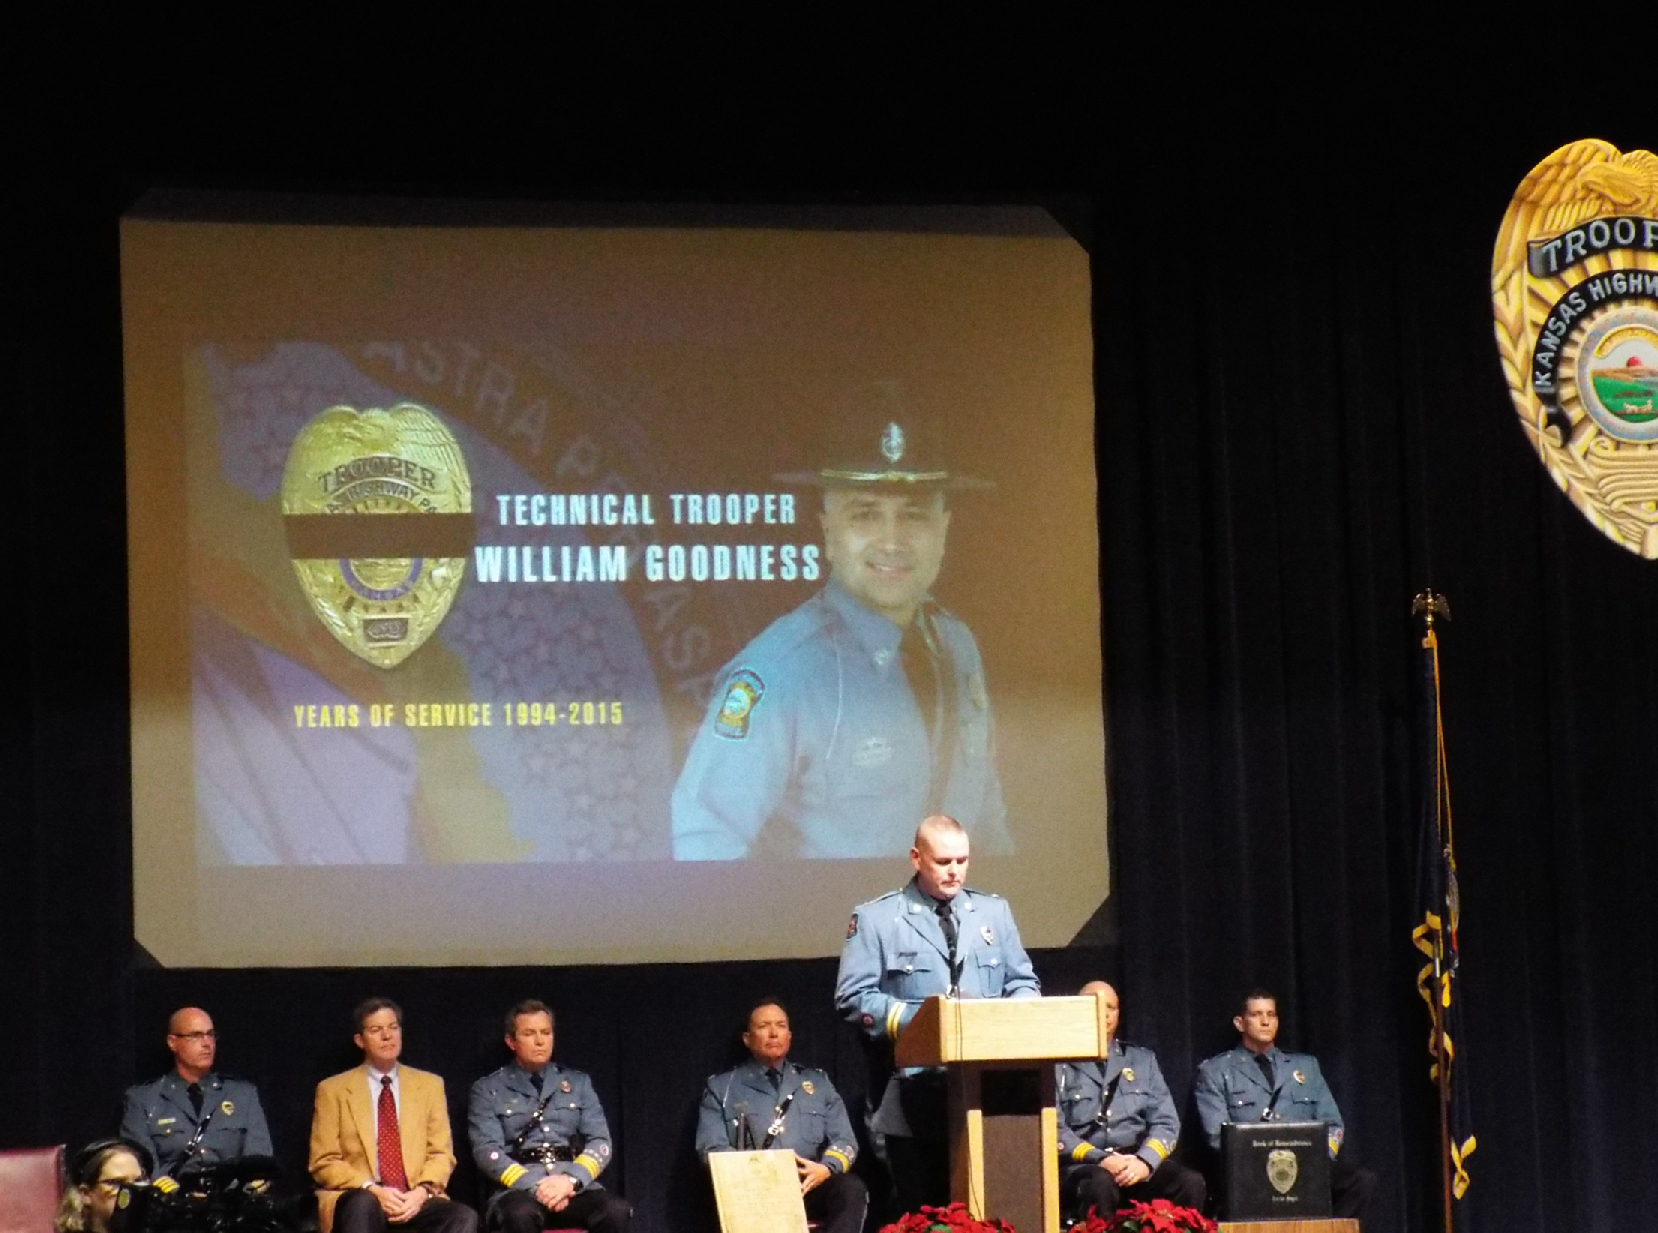 The graduation ceremony included a tribute to Master Trooper Bill Goodness, who passed away earlier this fall following a long battle with cancer.